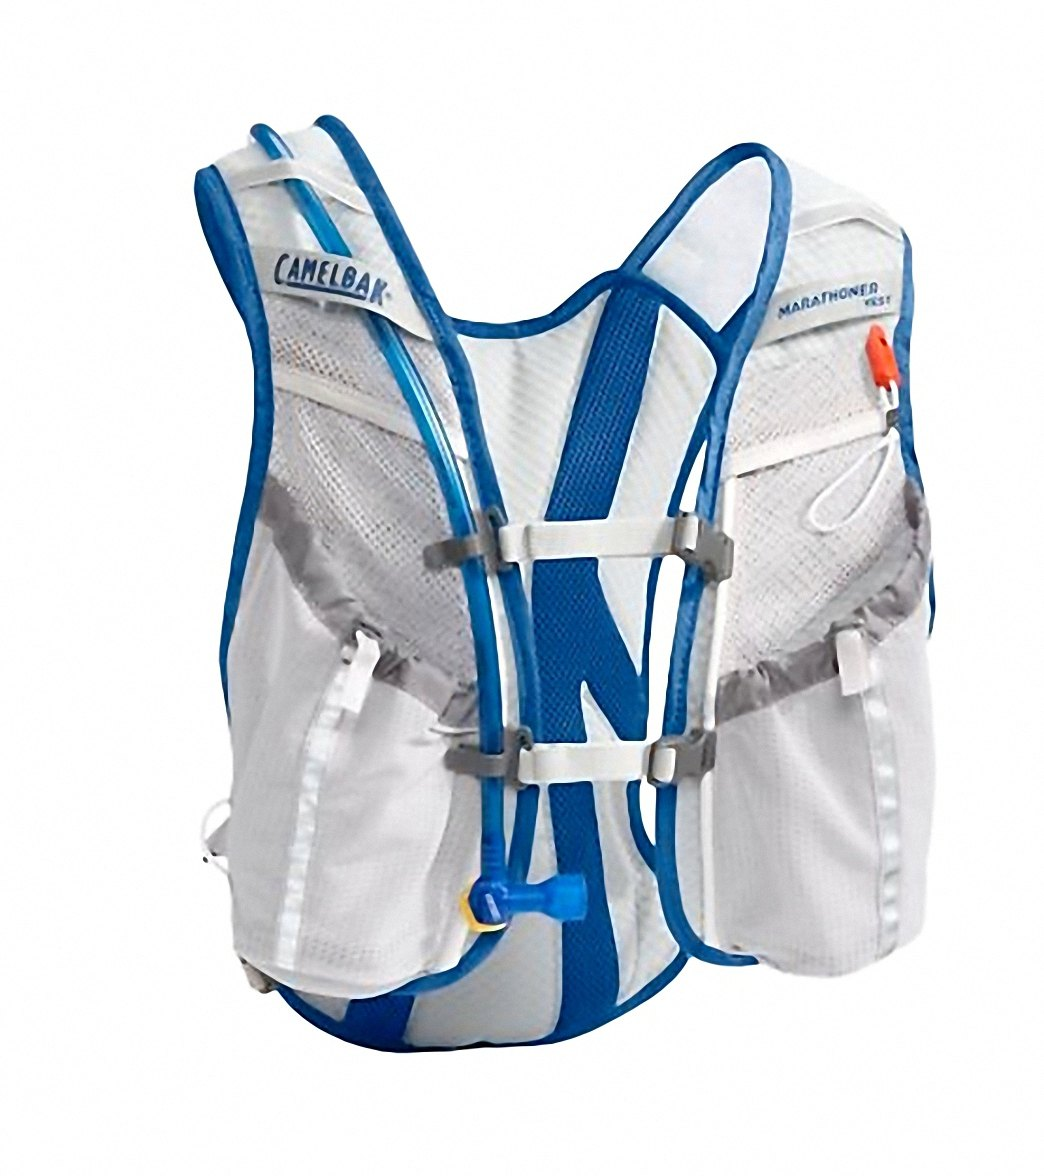 916b3c836a CamelBak Marathoner 70 oz Hydration Vest at SwimOutlet.com - Free ...